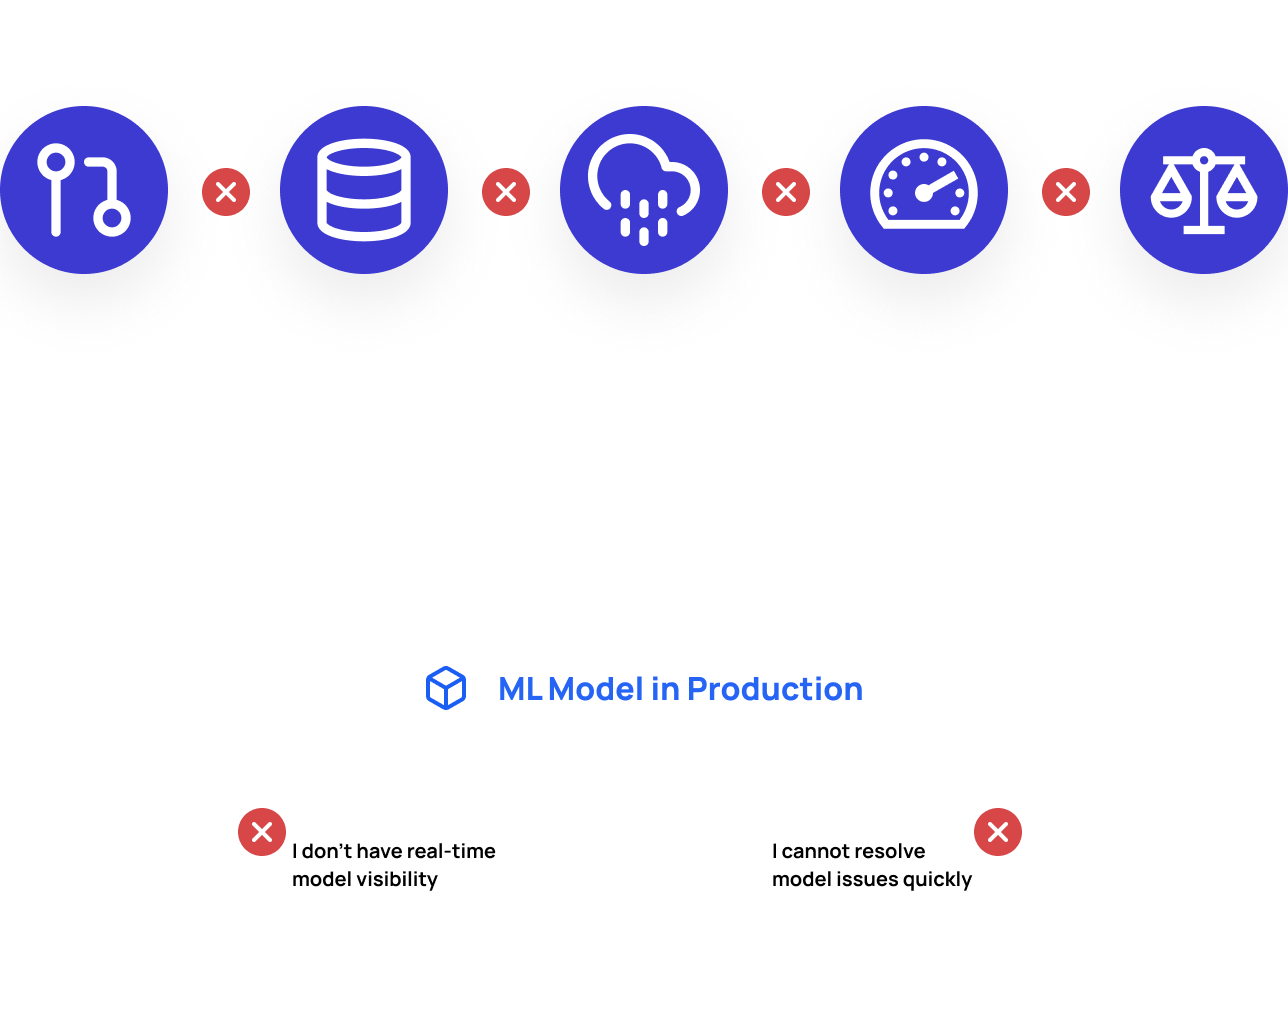 An illustration of MLOps without Fiddler's ML MPM Platform. Users such as Data Scientists and ML Engineers do not have real-time visibility and cannot resolve model issues like data drift, data integrity, outliers, performance, and bias quickly.